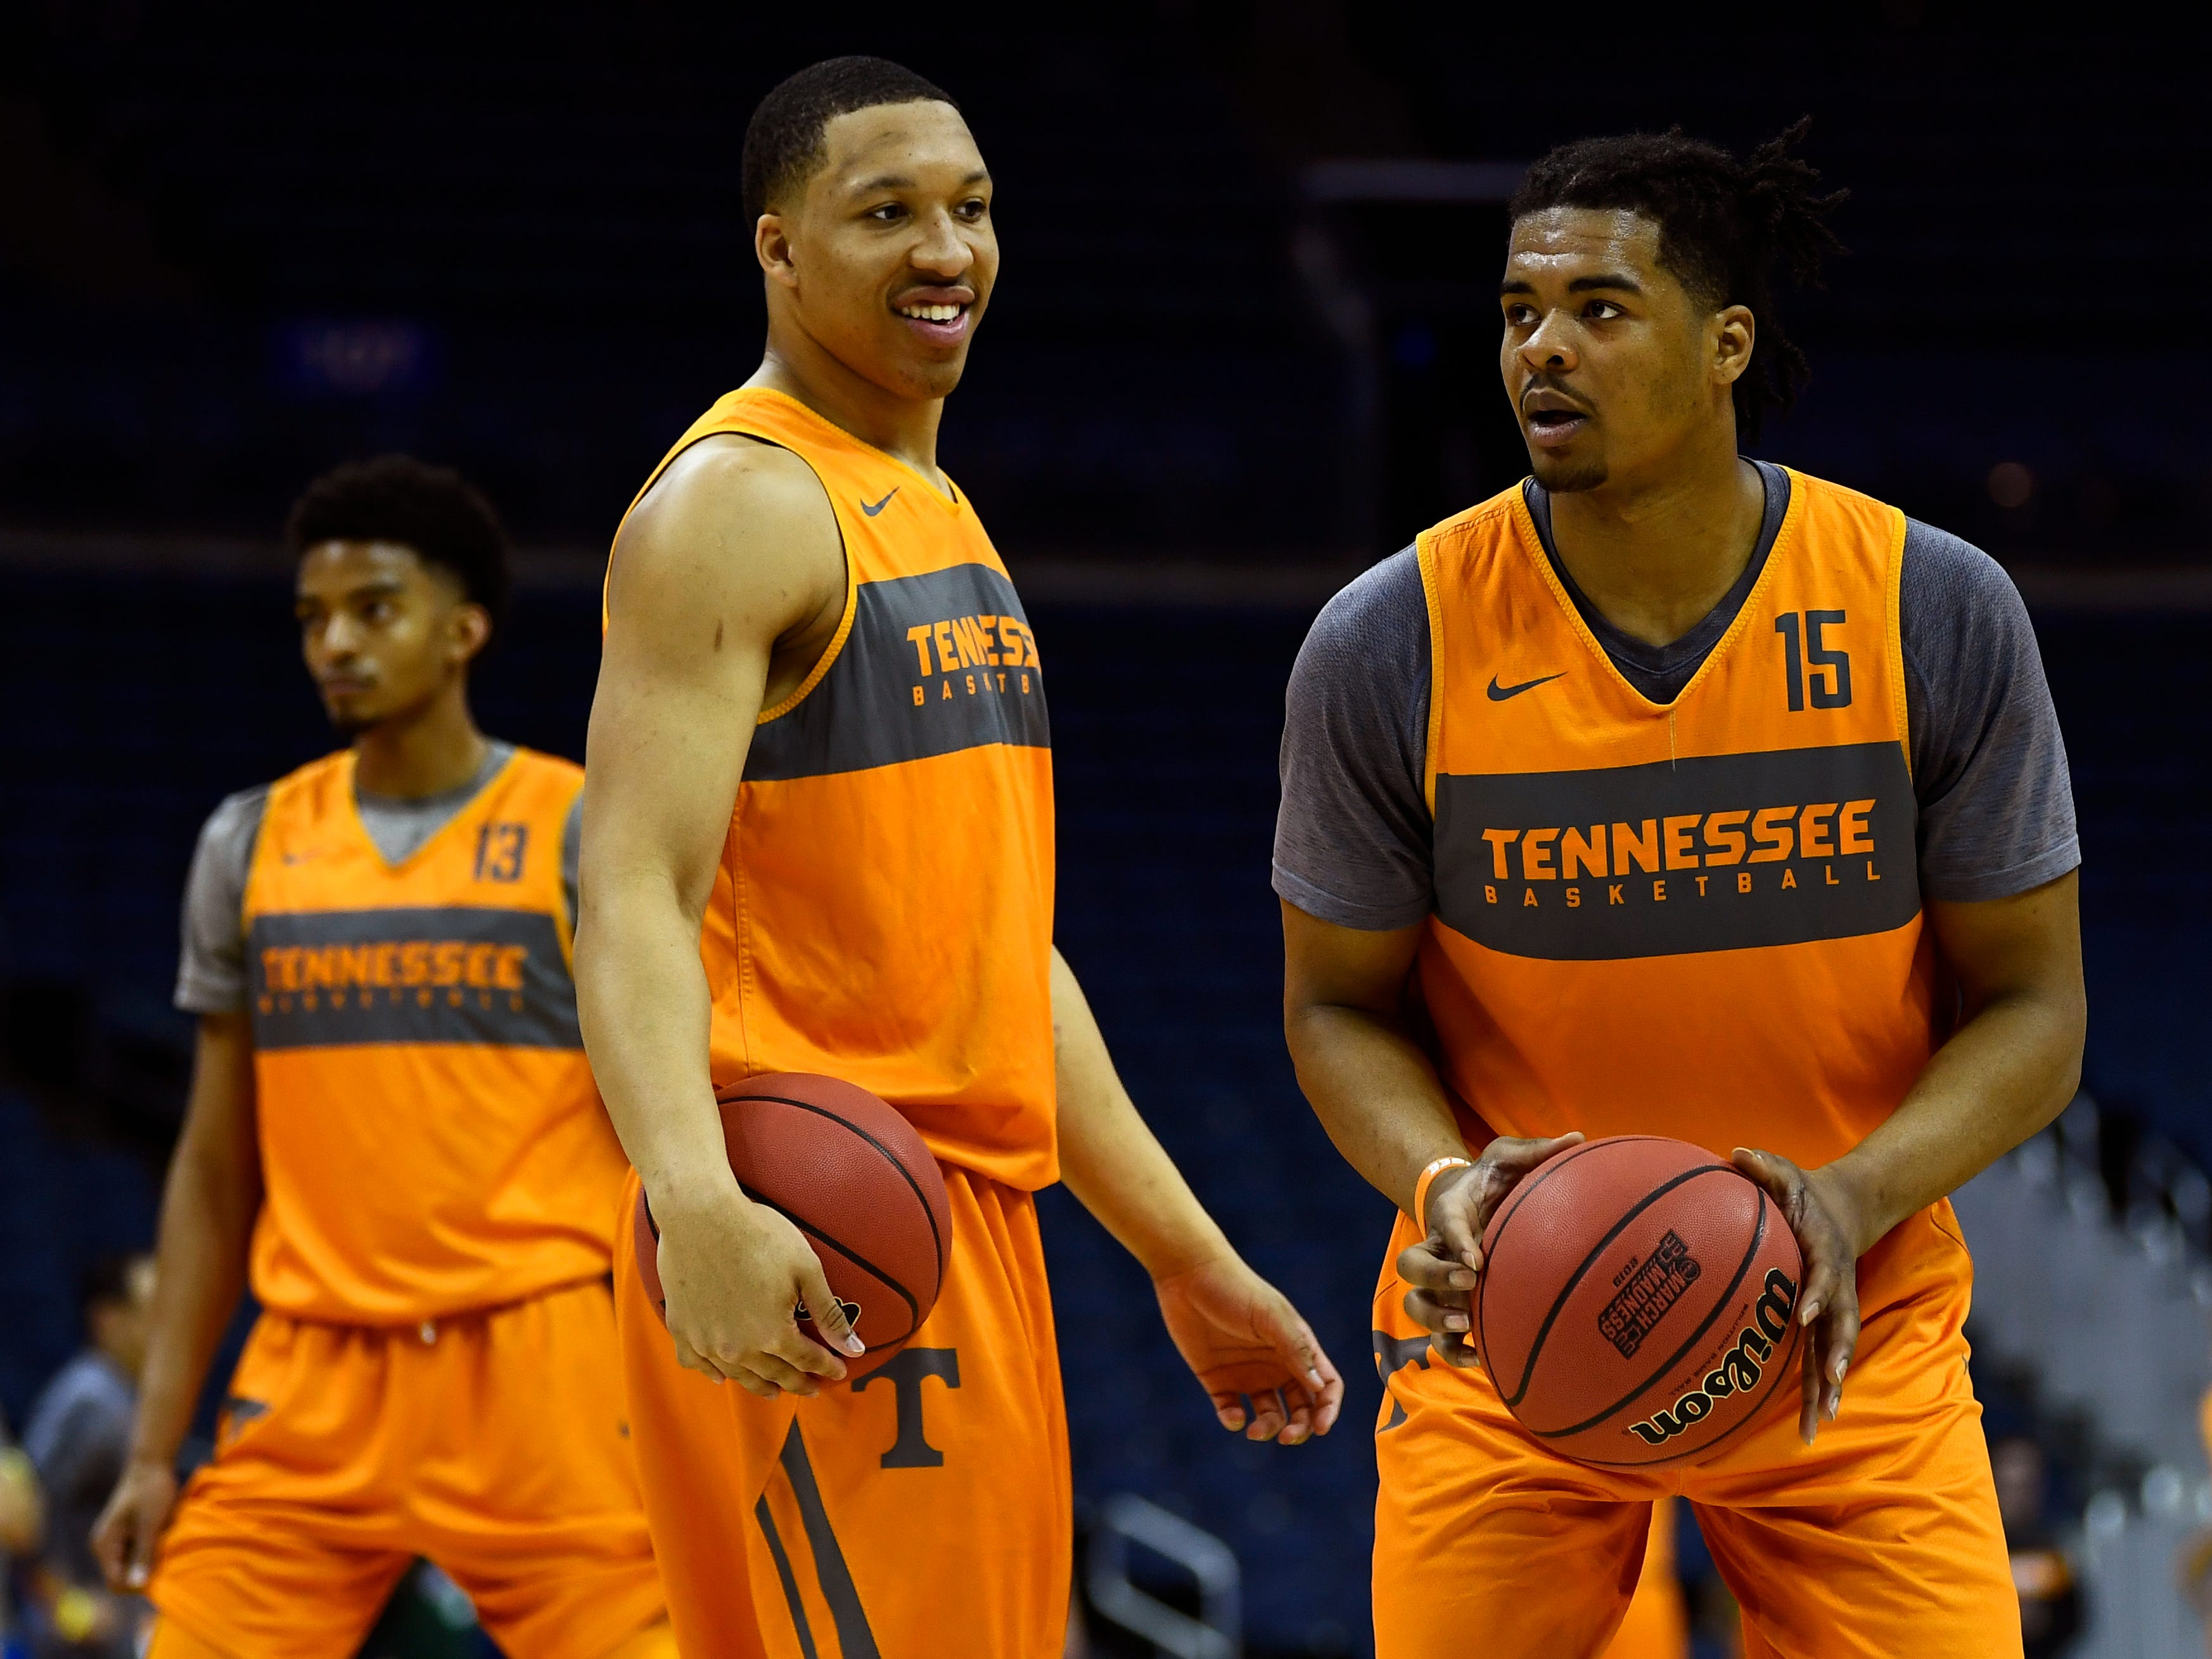 Tennessee forward Grant Williams (2)smiles at Tennessee forward Derrick Walker (15) as he shoots the ball during Tennessee's practice on Thursday, March 21, 2019, before their first round NCAA Tournament game against Colgate at Nationwide Arena in Columbus, Ohio.